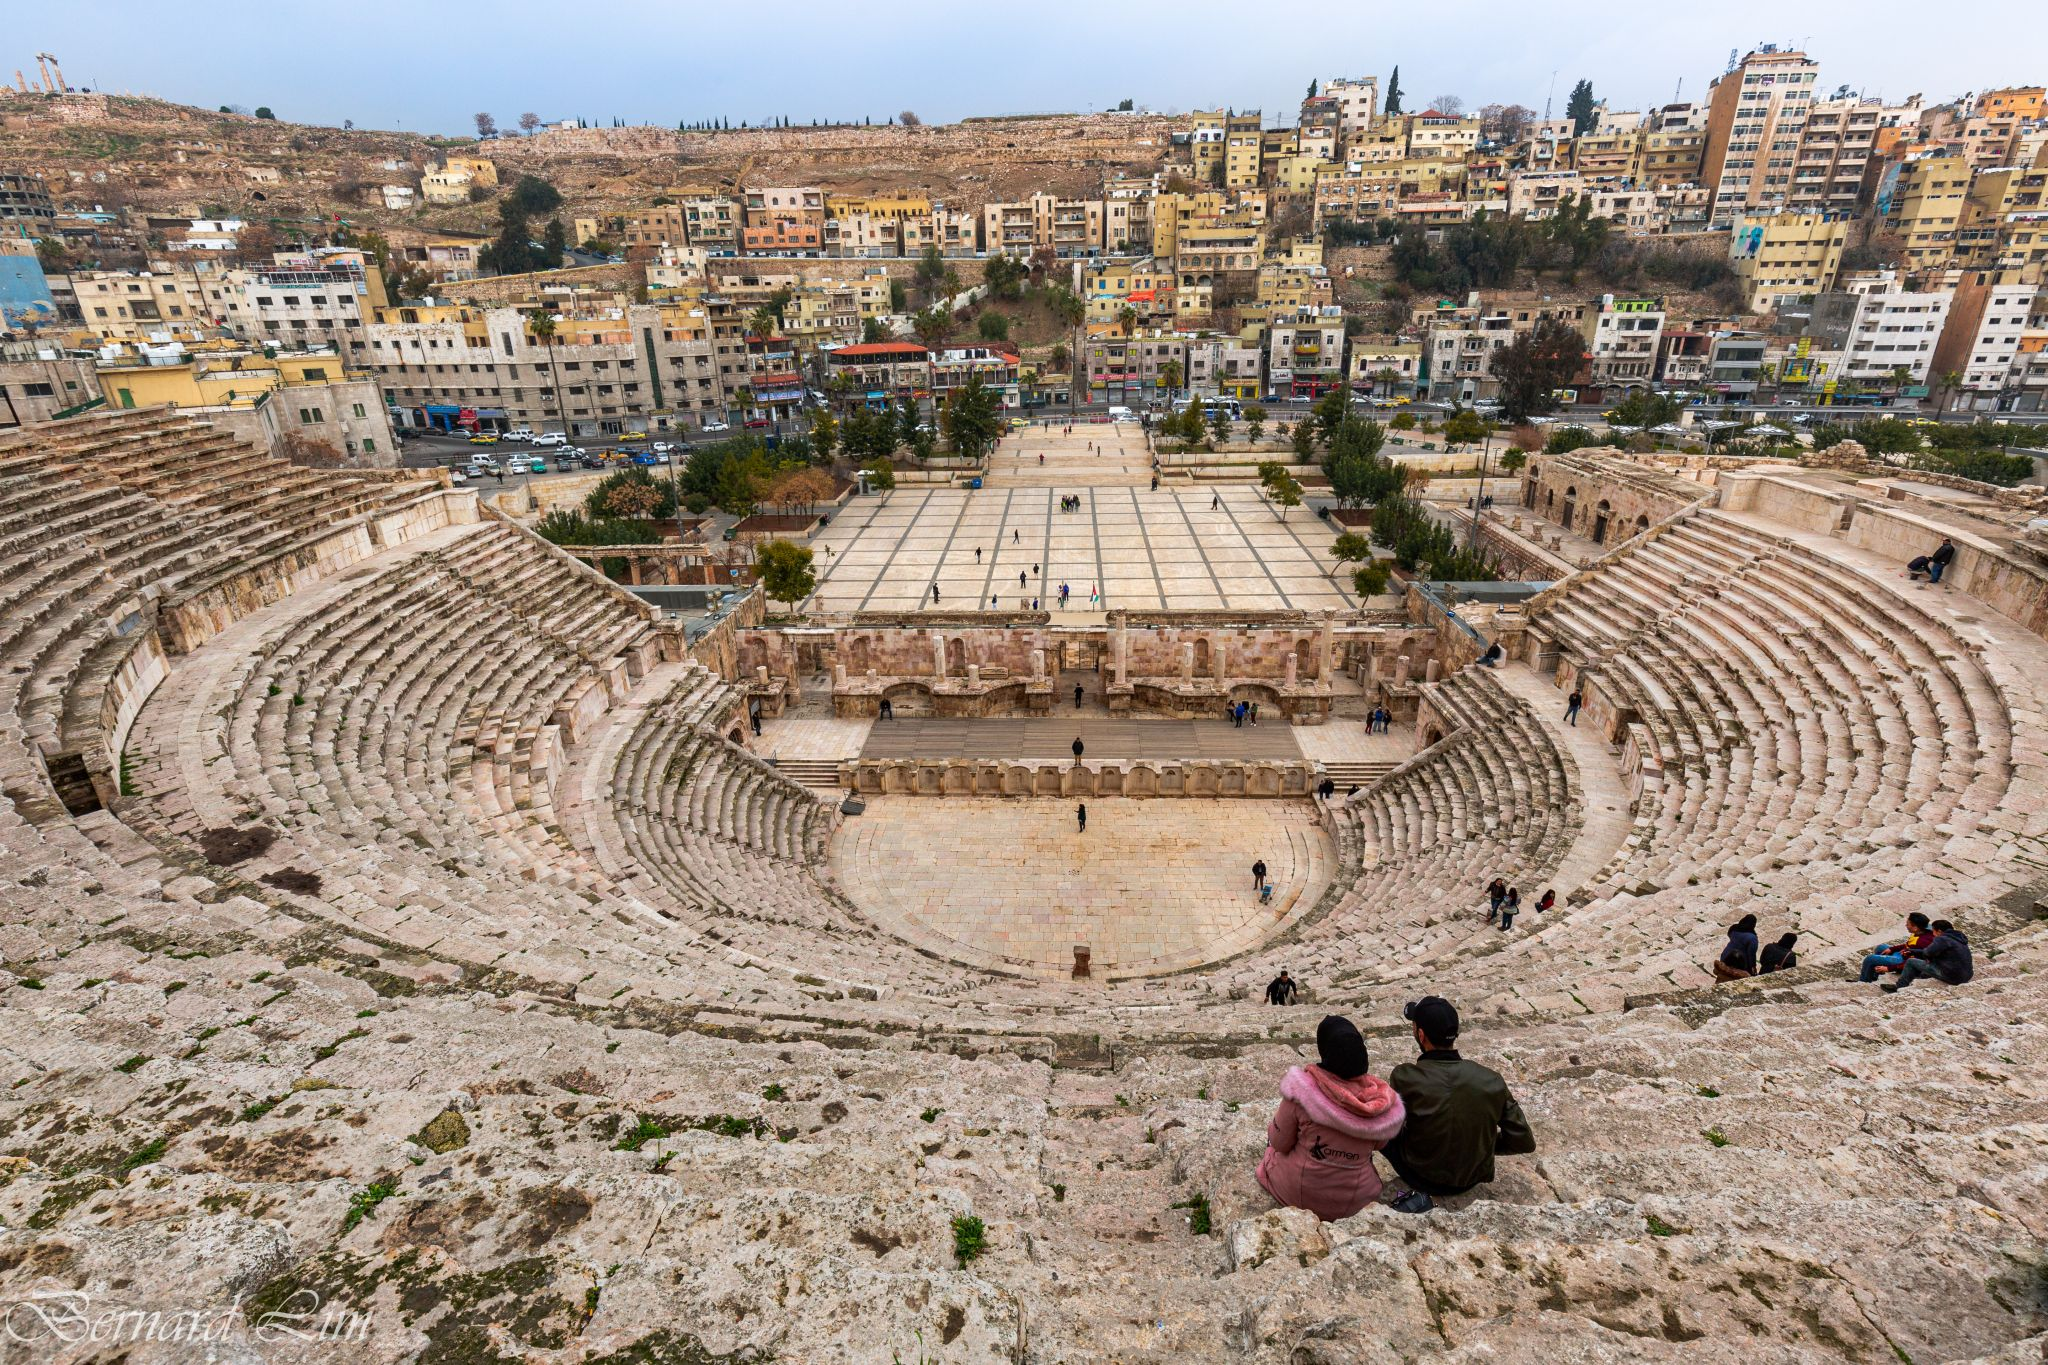 A young couple enjoying the view at the Roman Theatre, Jordan